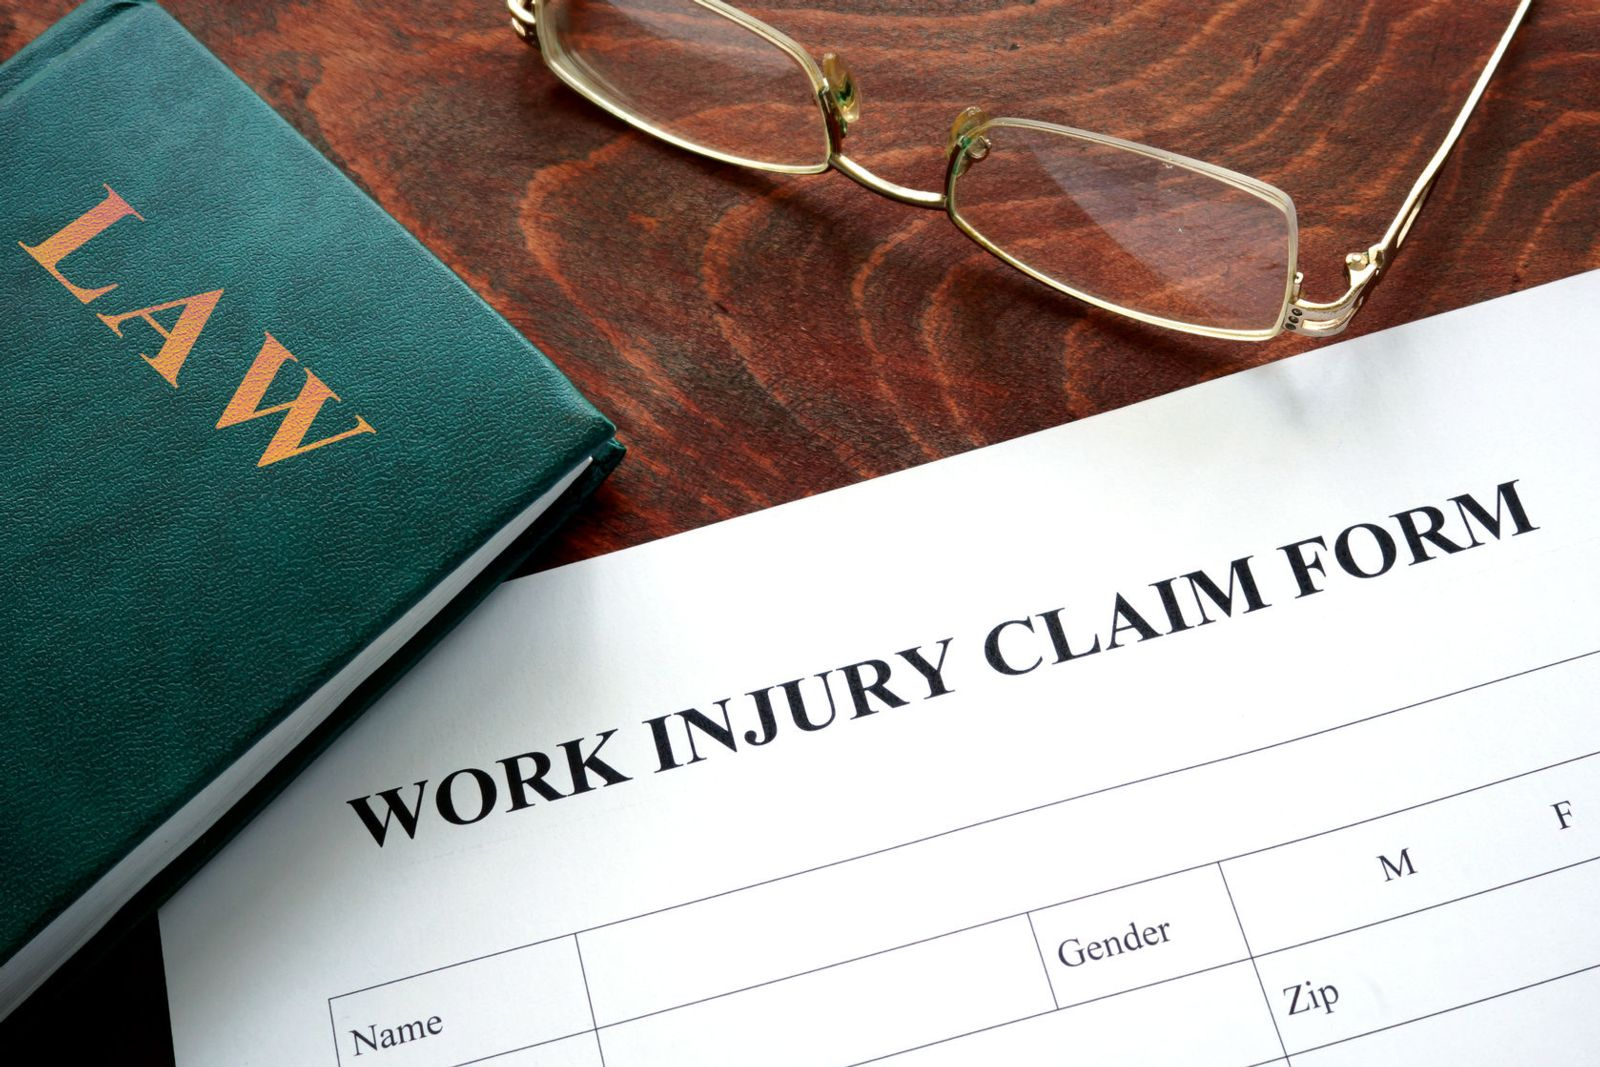 Iowa Work Injury Claim Form with glasses and a green law book